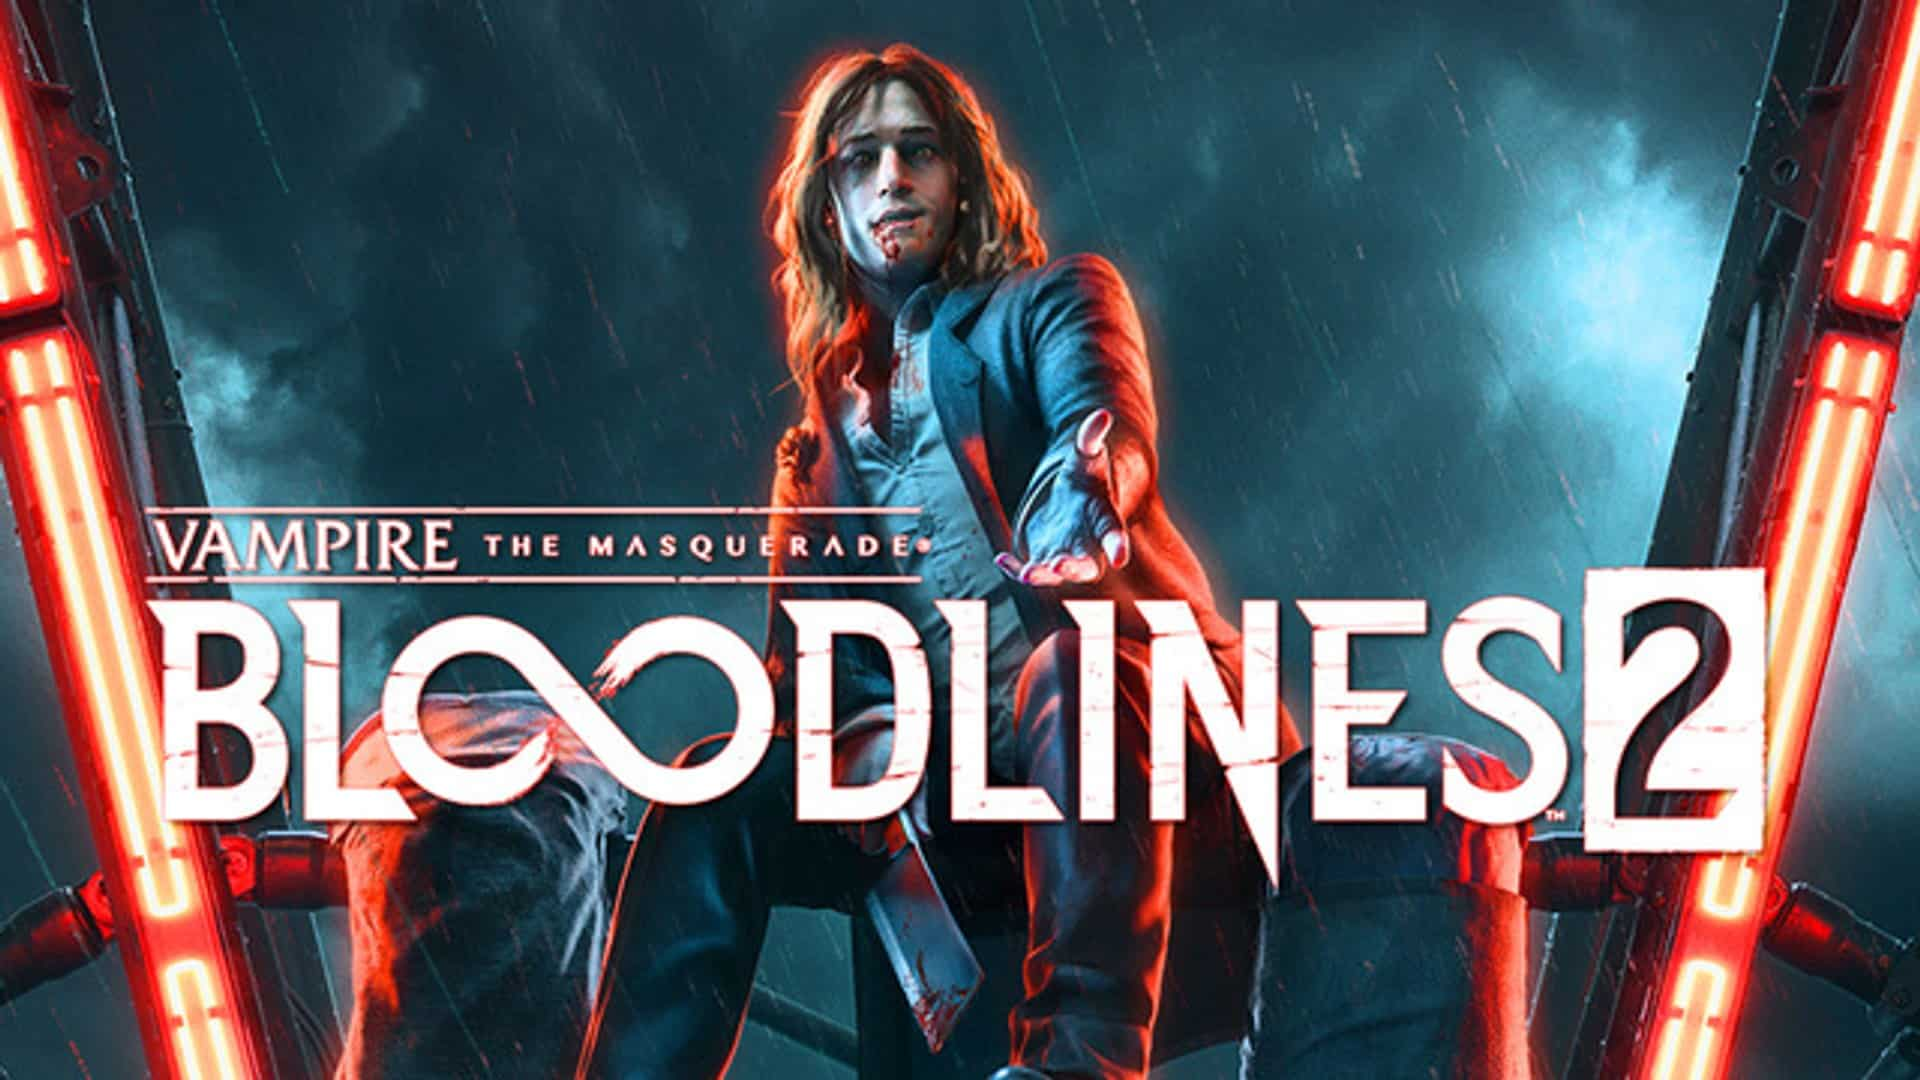 Vampire: The Masquerade – Bloodlines 2 Gameplay Revealed in Two New Trailers